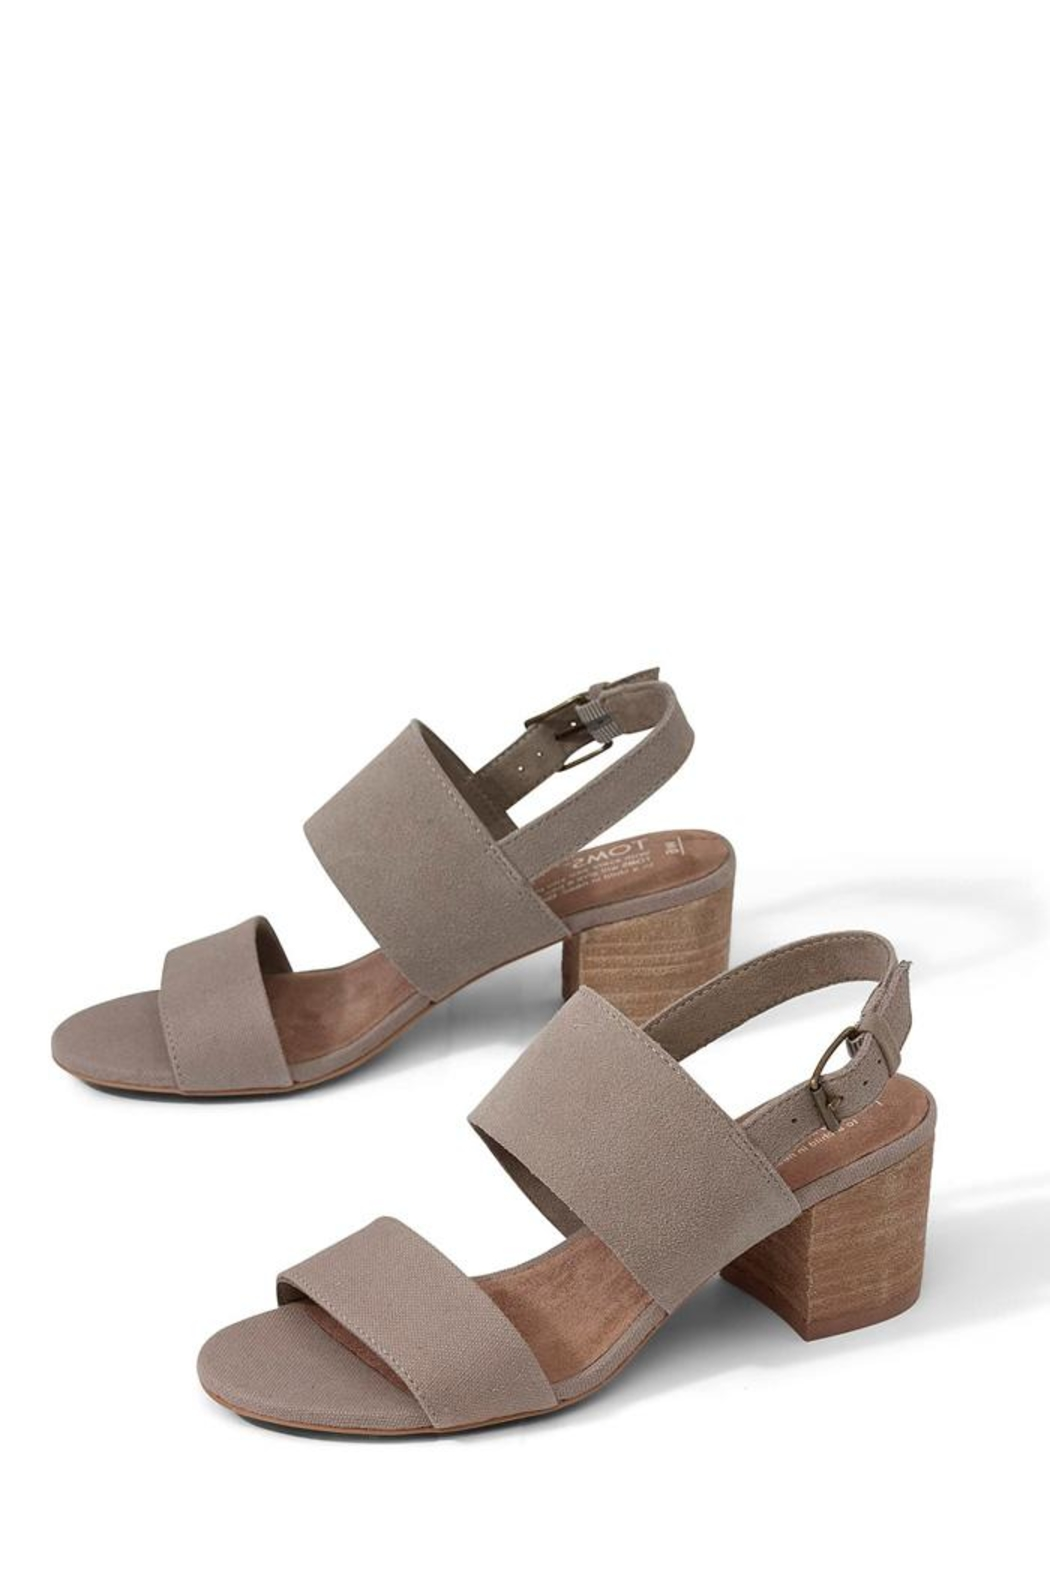 1a8c554ec51 TOMS Poppy Heeled Sandal from New York by Luna — Shoptiques